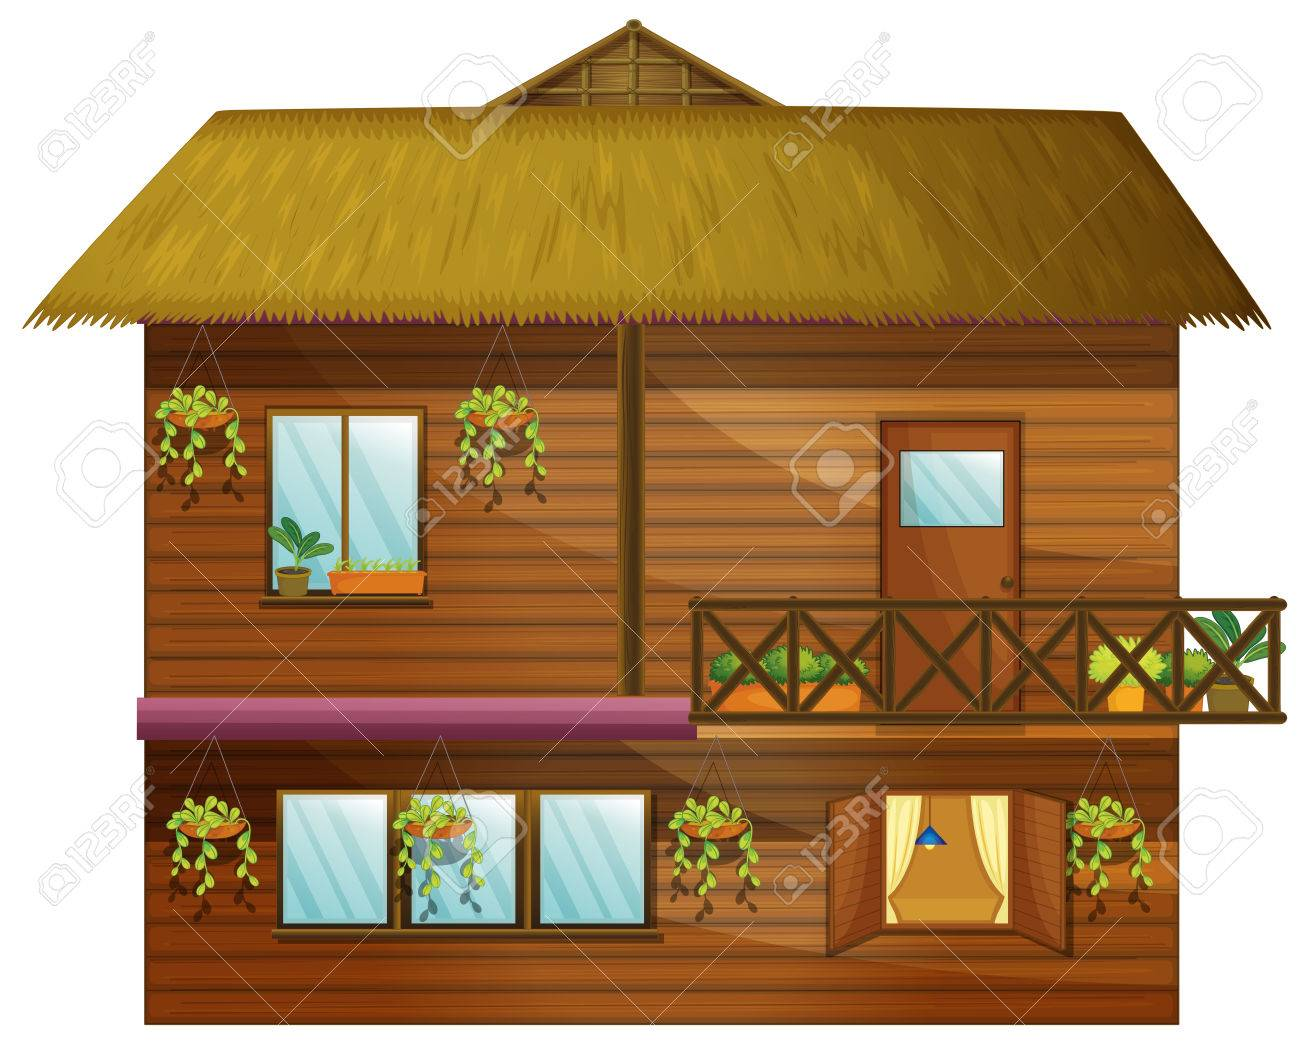 Wooden House With Two Stories Illustration Stock Vector